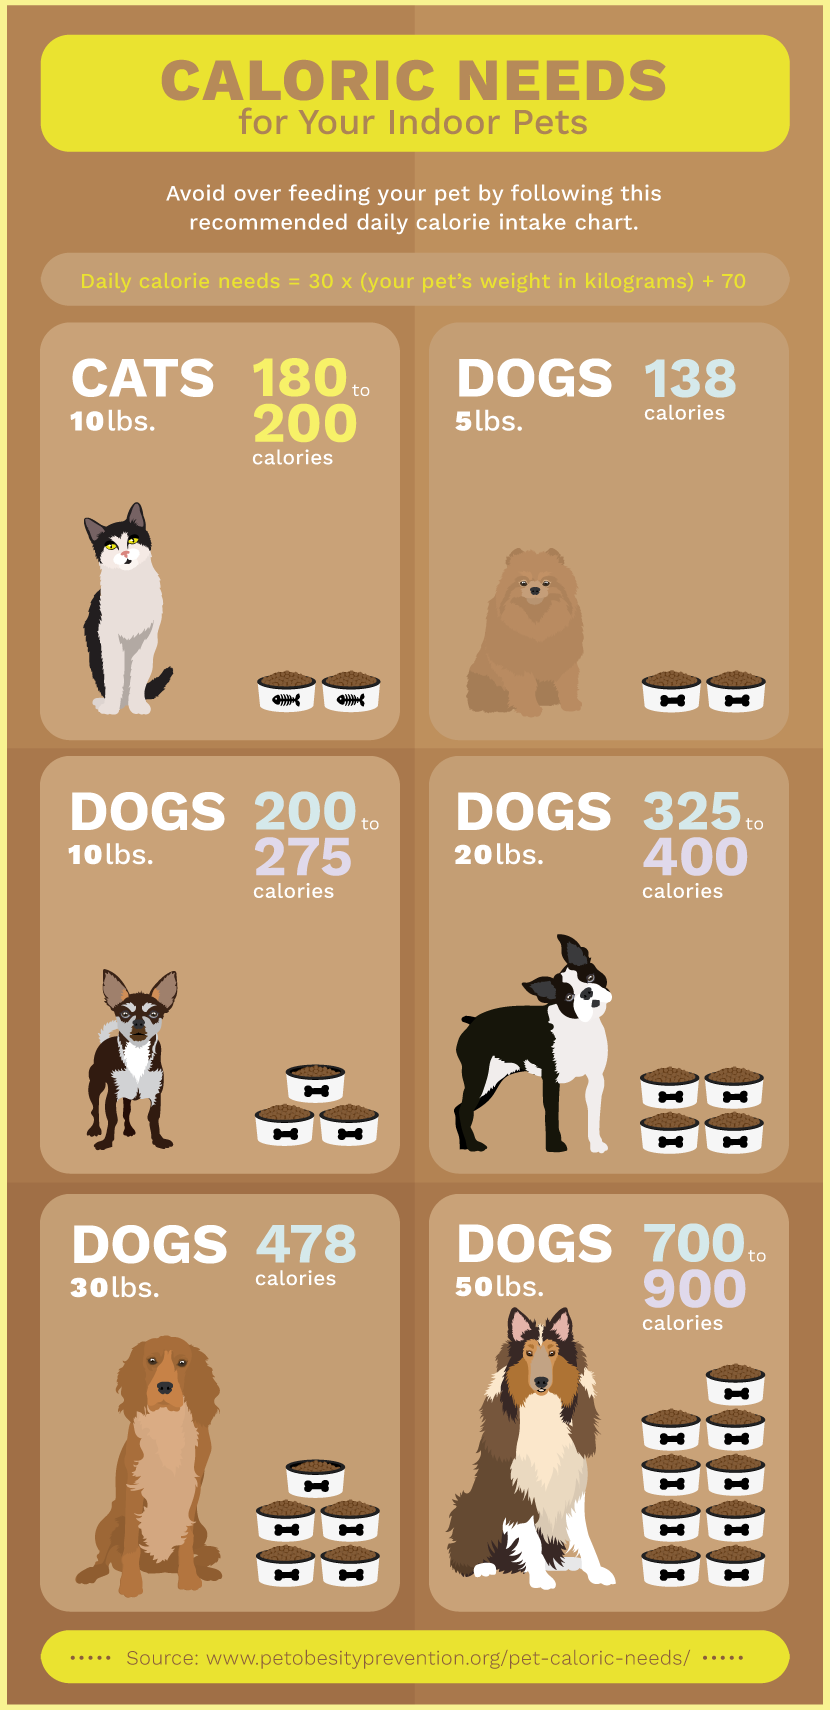 Calories Needed for Indoor Pets